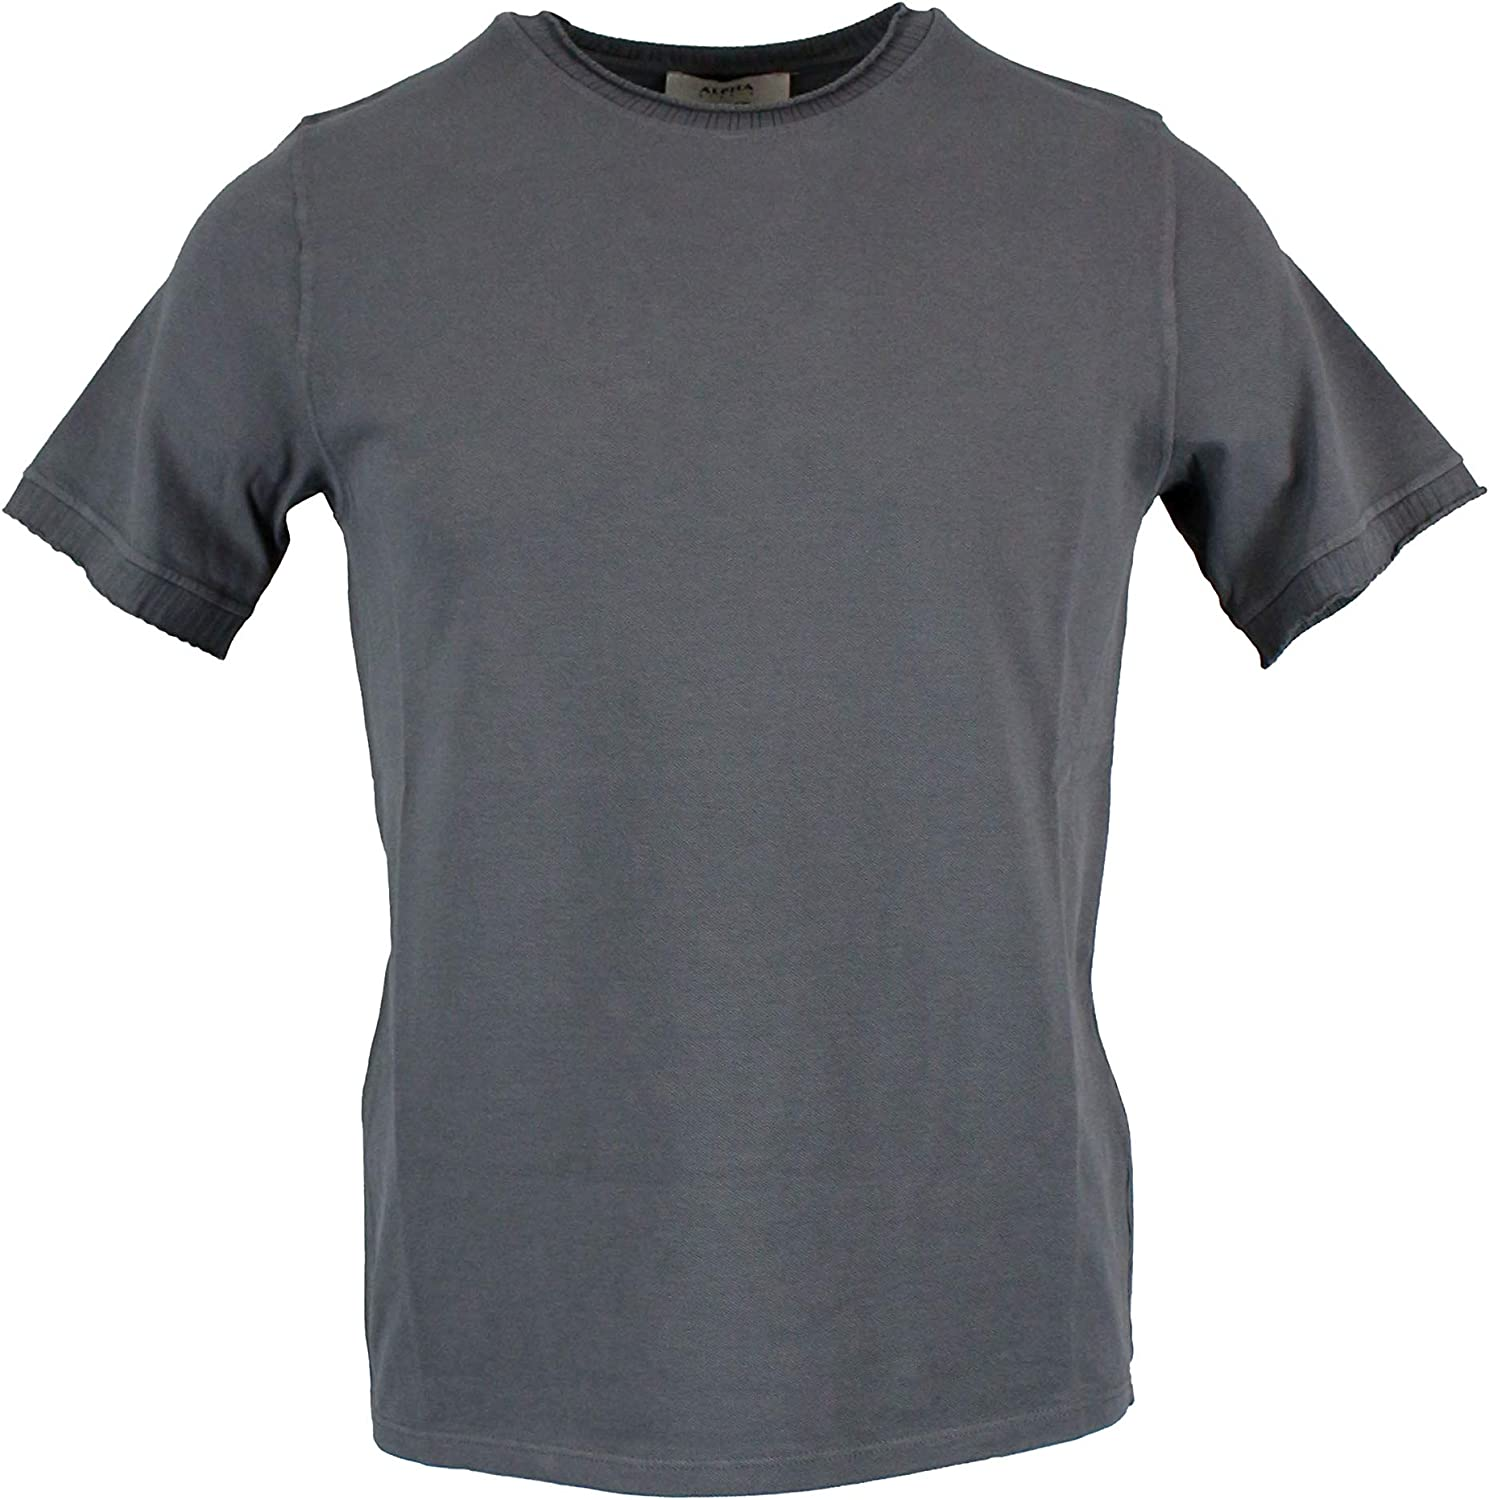 ALPHA STUDIO Men's AU9434C6123 Grey Cotton TShirt